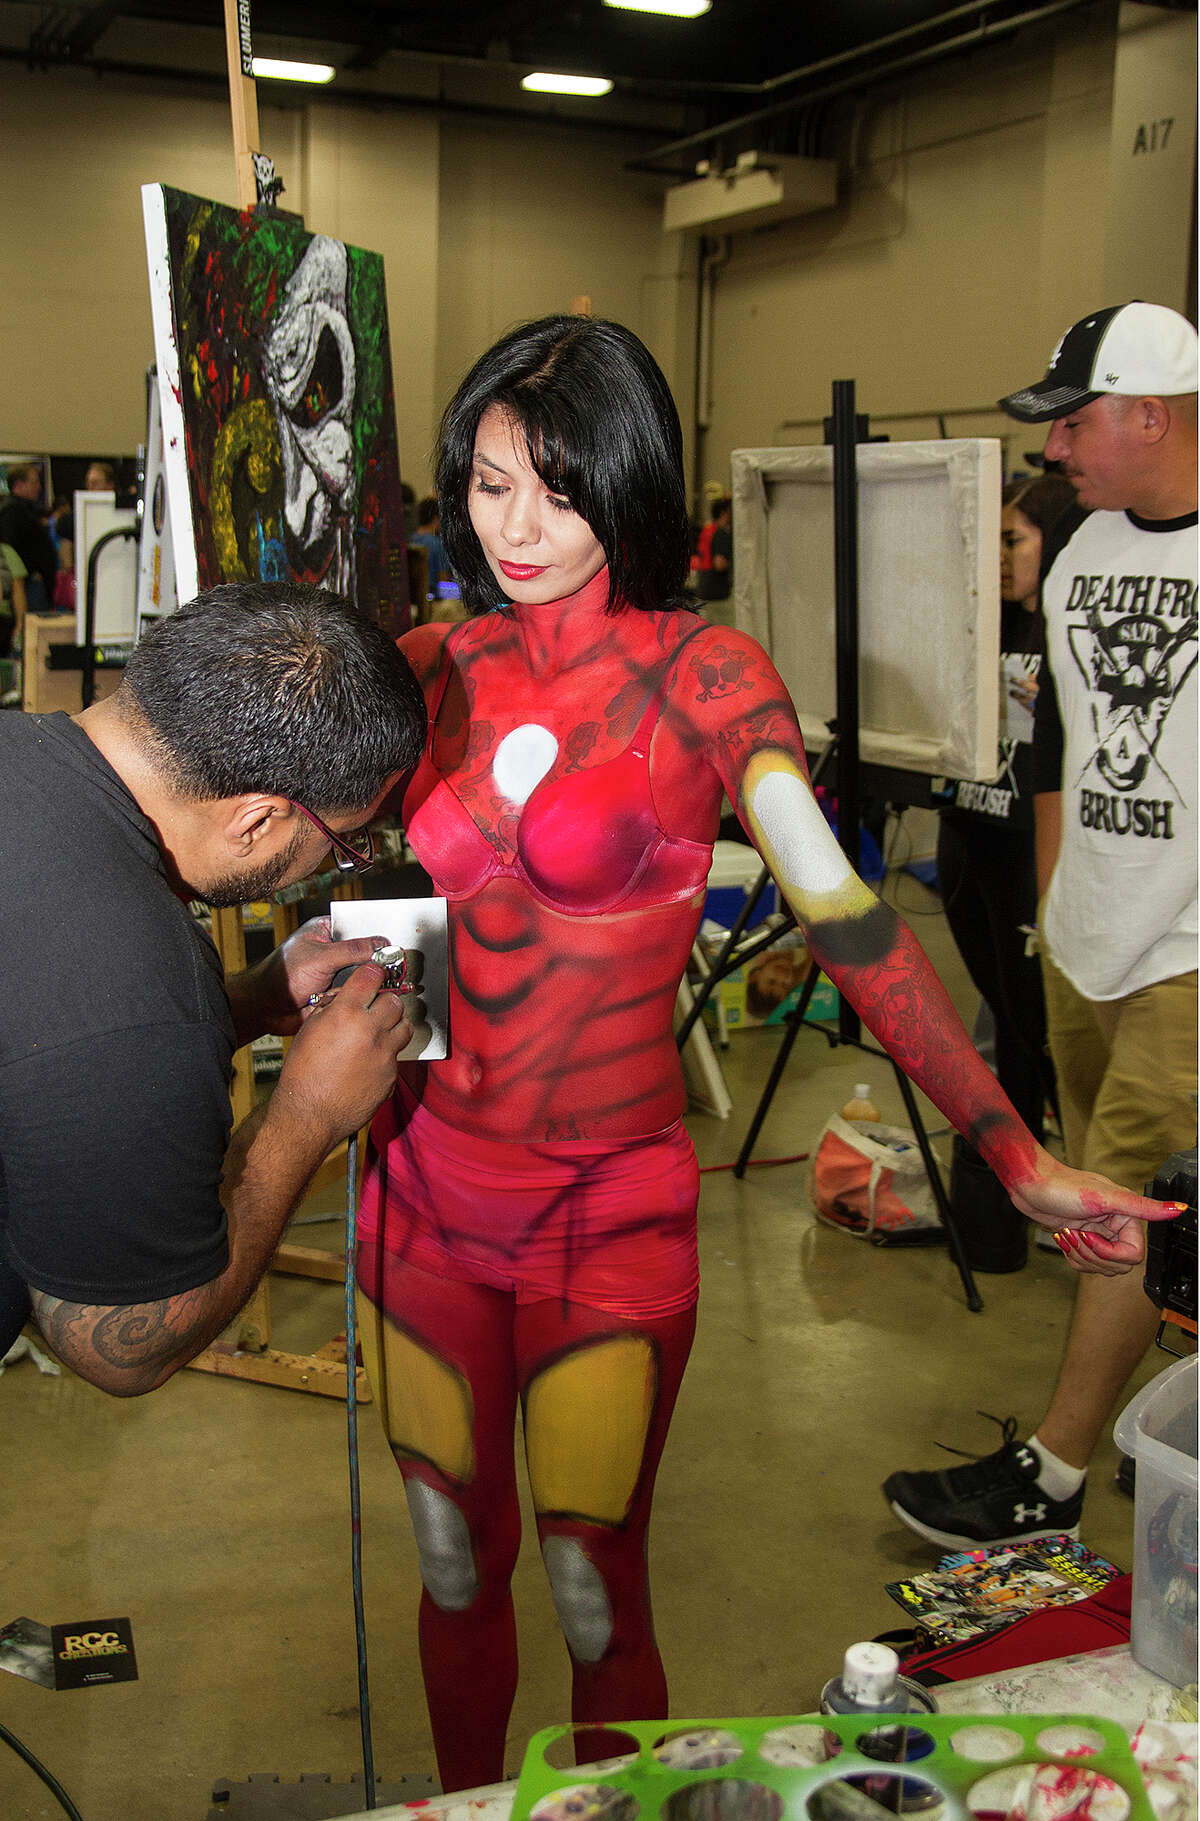 Jason Garcia spray paints Jennifer Badillo at the Death From Brush booth, Saturday, Sept. 12, 2015 at Alamo City Comic Con at the Henry B. Gonzalez Convention Center.